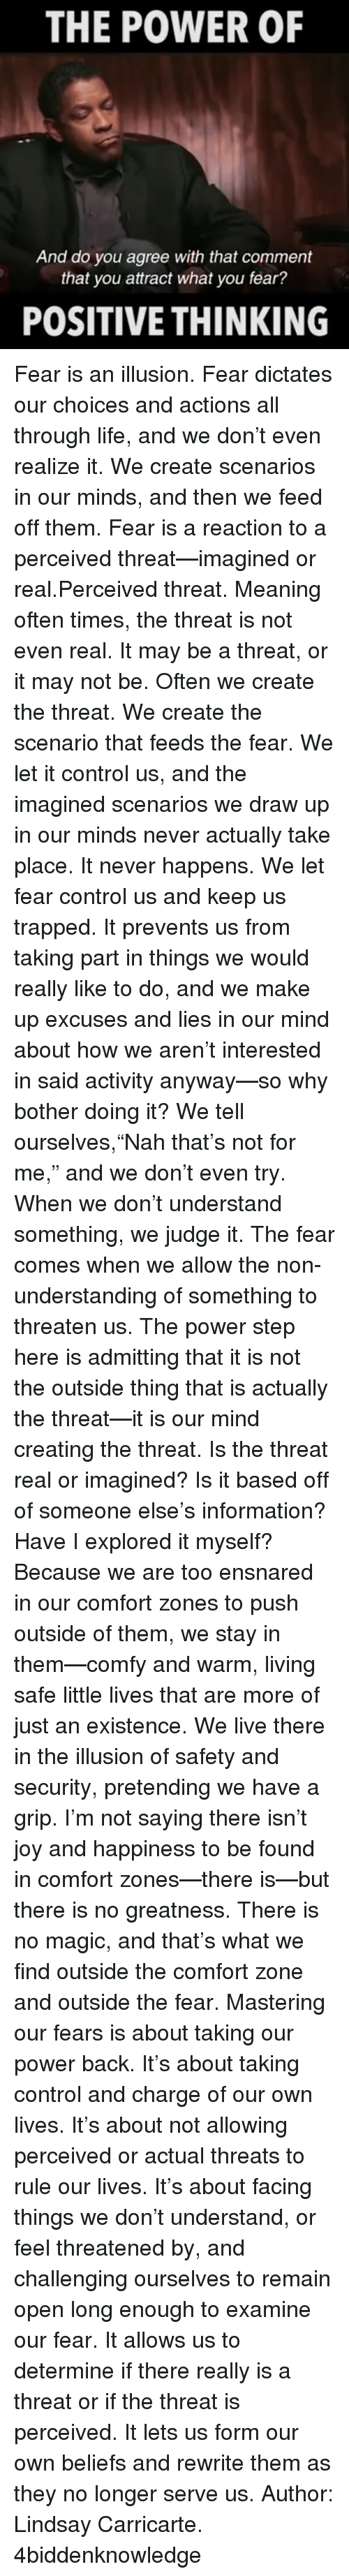 """Oftenly: THE POWER OF  And do you agree with that comment  that you attract what you fear?  POSITIVE THINKING Fear is an illusion. Fear dictates our choices and actions all through life, and we don't even realize it. We create scenarios in our minds, and then we feed off them. Fear is a reaction to a perceived threat—imagined or real.Perceived threat. Meaning often times, the threat is not even real. It may be a threat, or it may not be. Often we create the threat. We create the scenario that feeds the fear. We let it control us, and the imagined scenarios we draw up in our minds never actually take place. It never happens. We let fear control us and keep us trapped. It prevents us from taking part in things we would really like to do, and we make up excuses and lies in our mind about how we aren't interested in said activity anyway—so why bother doing it? We tell ourselves,""""Nah that's not for me,"""" and we don't even try. When we don't understand something, we judge it. The fear comes when we allow the non-understanding of something to threaten us. The power step here is admitting that it is not the outside thing that is actually the threat—it is our mind creating the threat. Is the threat real or imagined? Is it based off of someone else's information? Have I explored it myself? Because we are too ensnared in our comfort zones to push outside of them, we stay in them—comfy and warm, living safe little lives that are more of just an existence. We live there in the illusion of safety and security, pretending we have a grip. I'm not saying there isn't joy and happiness to be found in comfort zones—there is—but there is no greatness. There is no magic, and that's what we find outside the comfort zone and outside the fear. Mastering our fears is about taking our power back. It's about taking control and charge of our own lives. It's about not allowing perceived or actual threats to rule our lives. It's about facing things we don't understand, or feel threatened by, and c"""